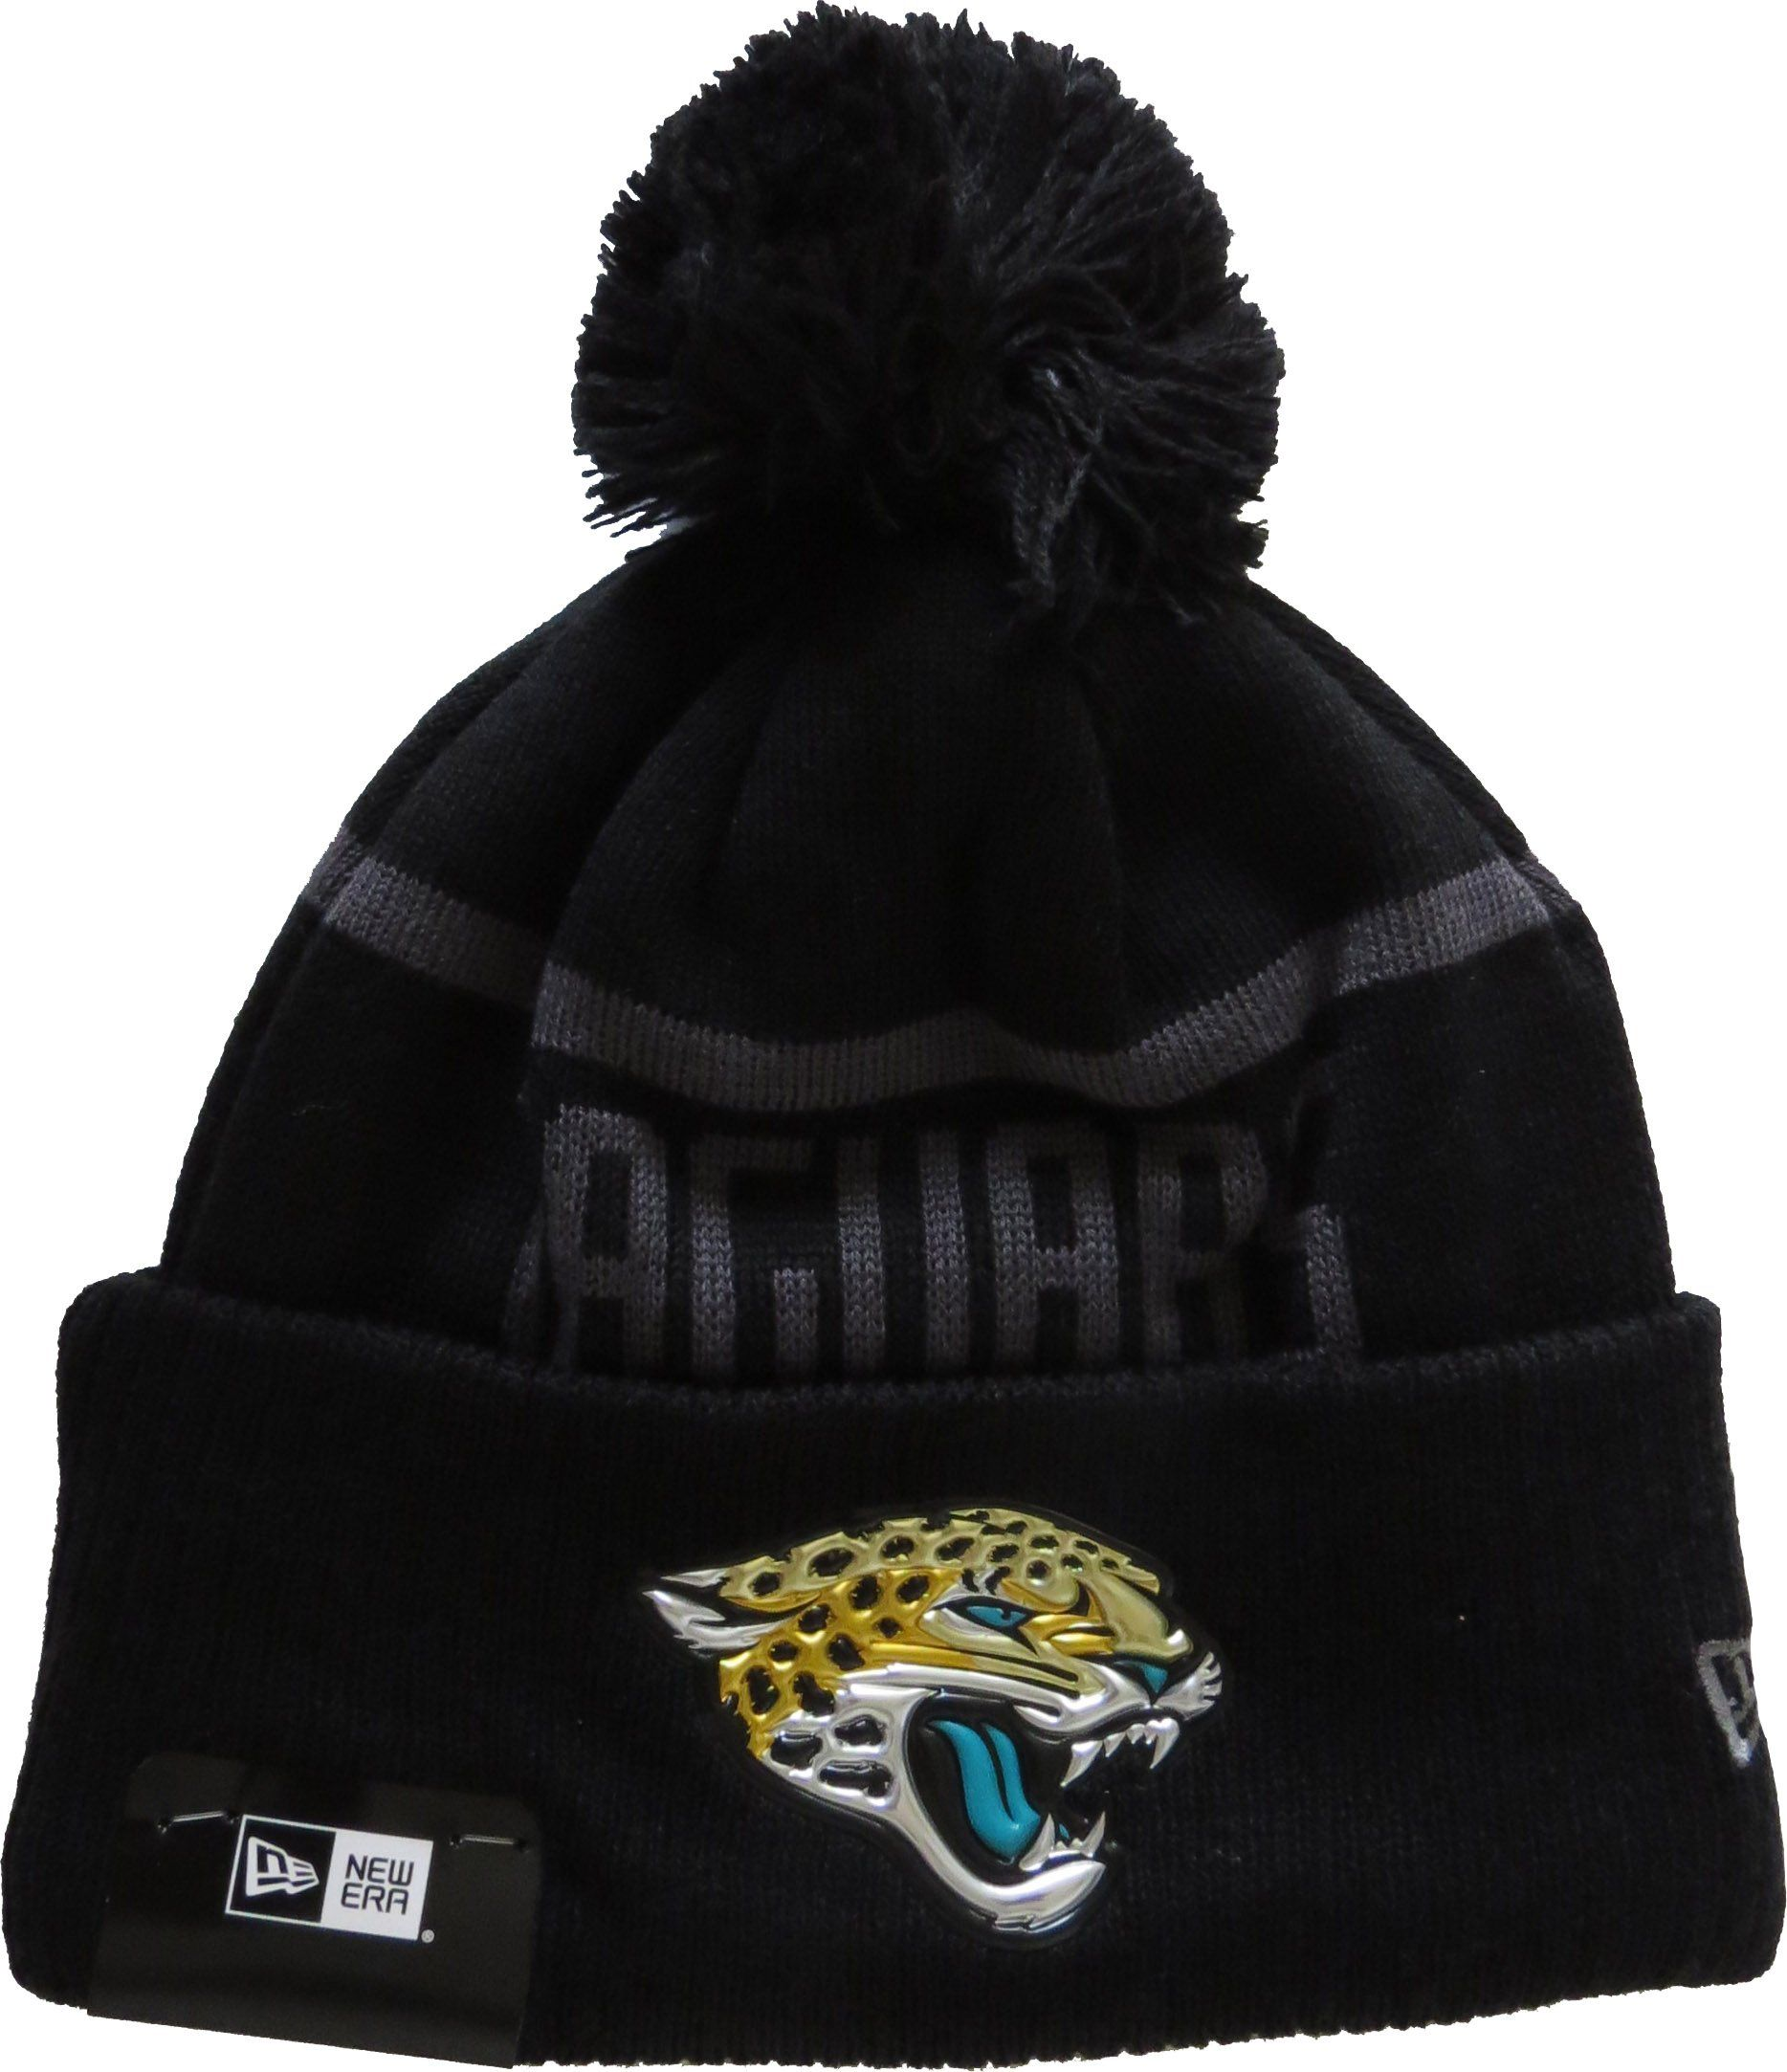 95a773359 New Era International Series Game 2017 NFL Bobble Hat. Black with ...